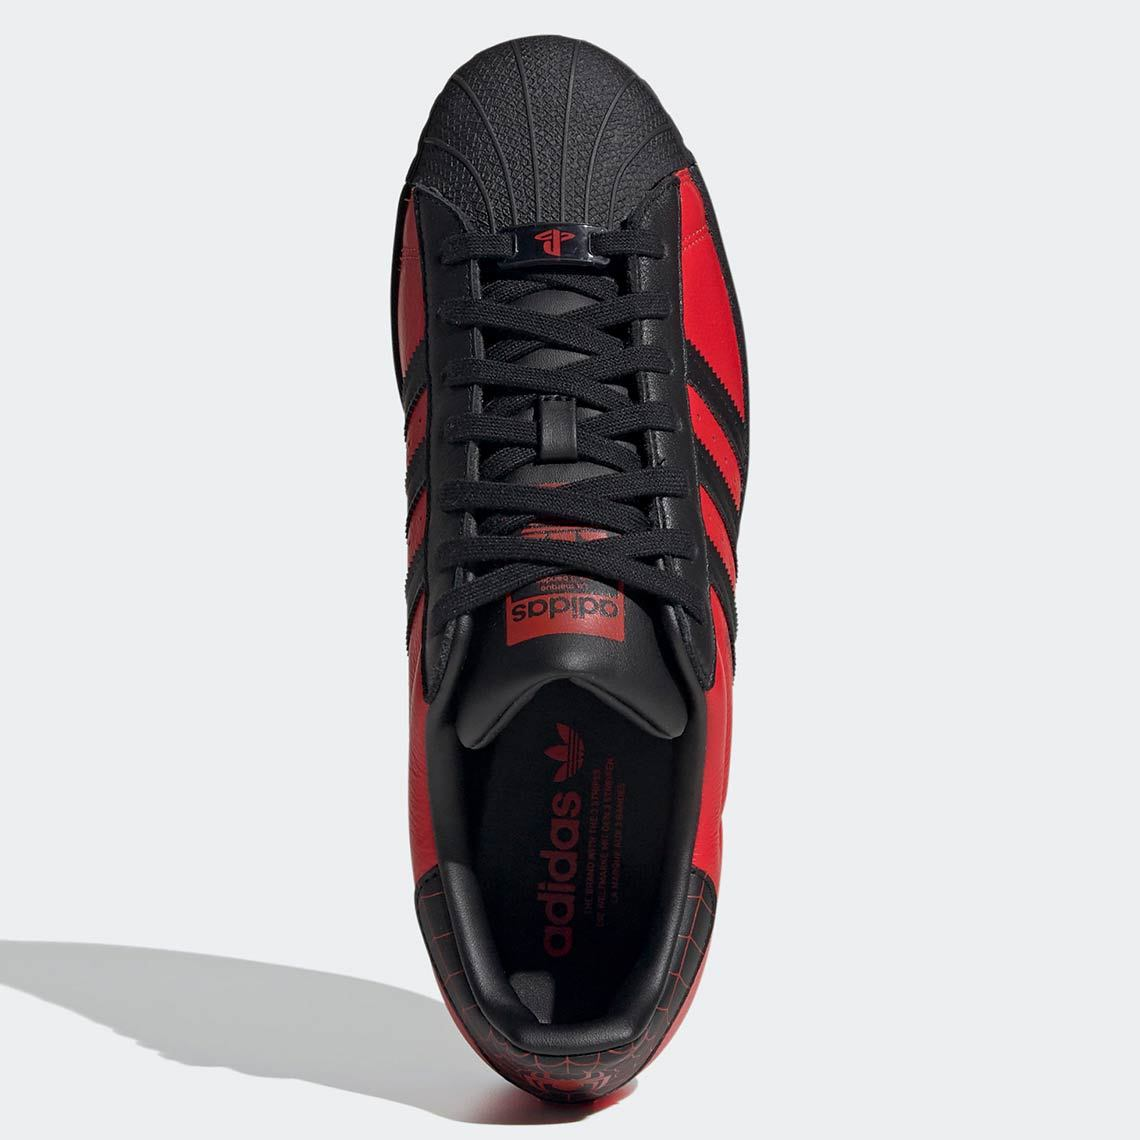 Adidas-Superstar-Spider-Man-Miles-Morales-On-Foot-Hover-View